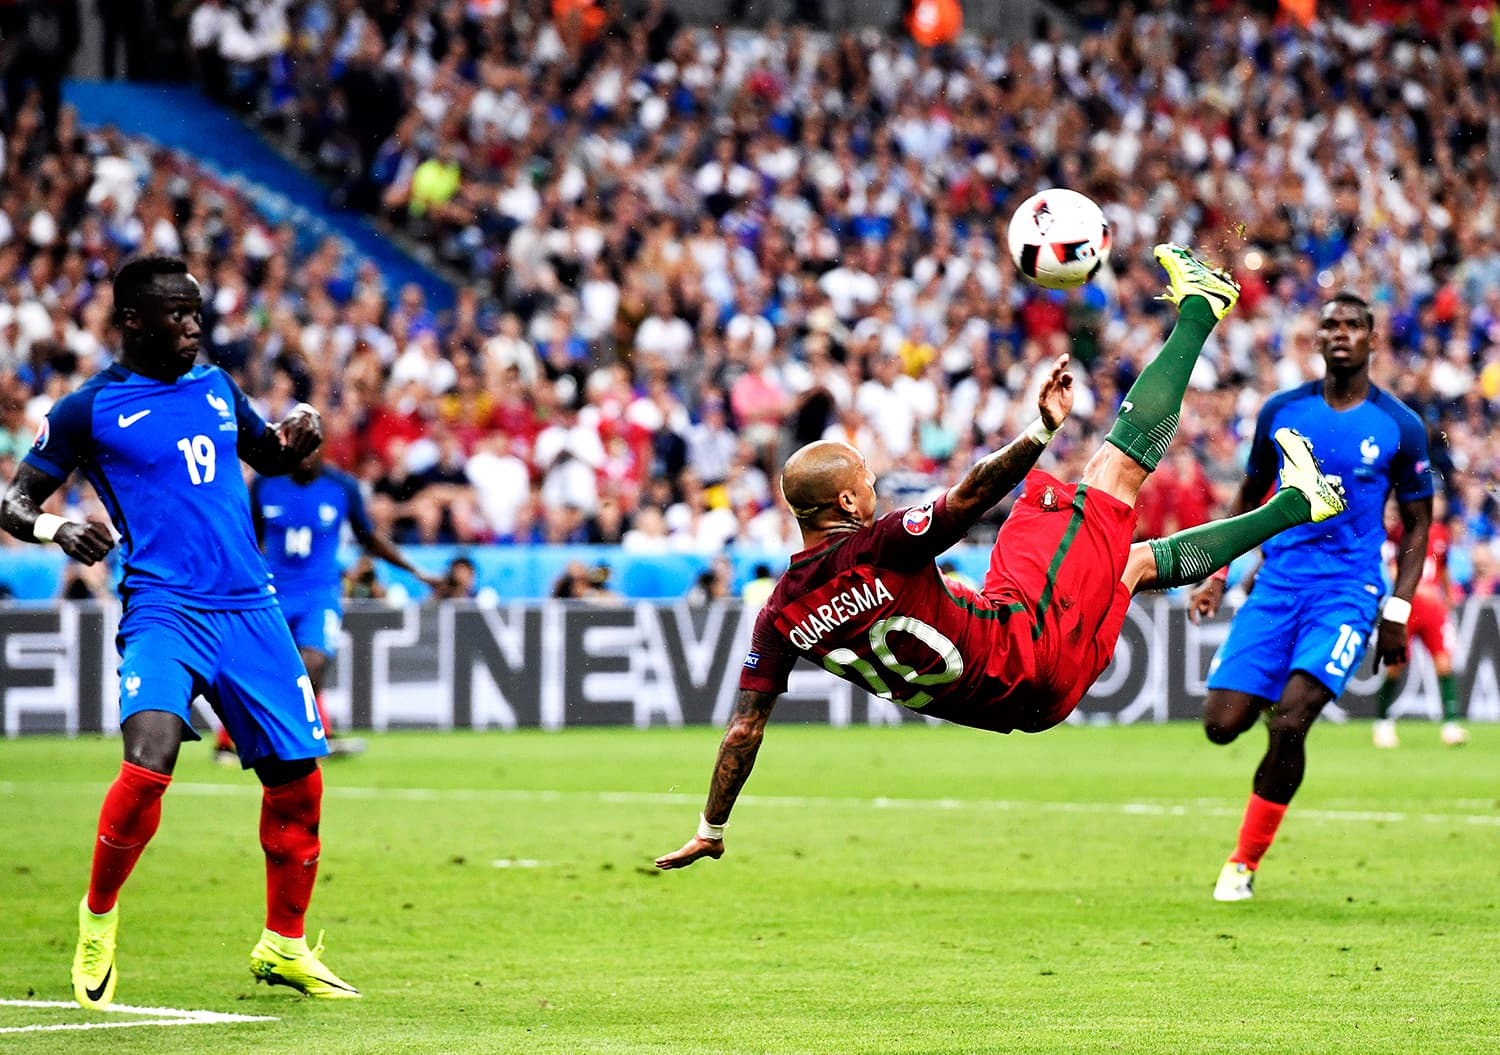 Portugal's Ricardo Quaresma makes an extravagant bicycle kick attempt on France's goal. — AP